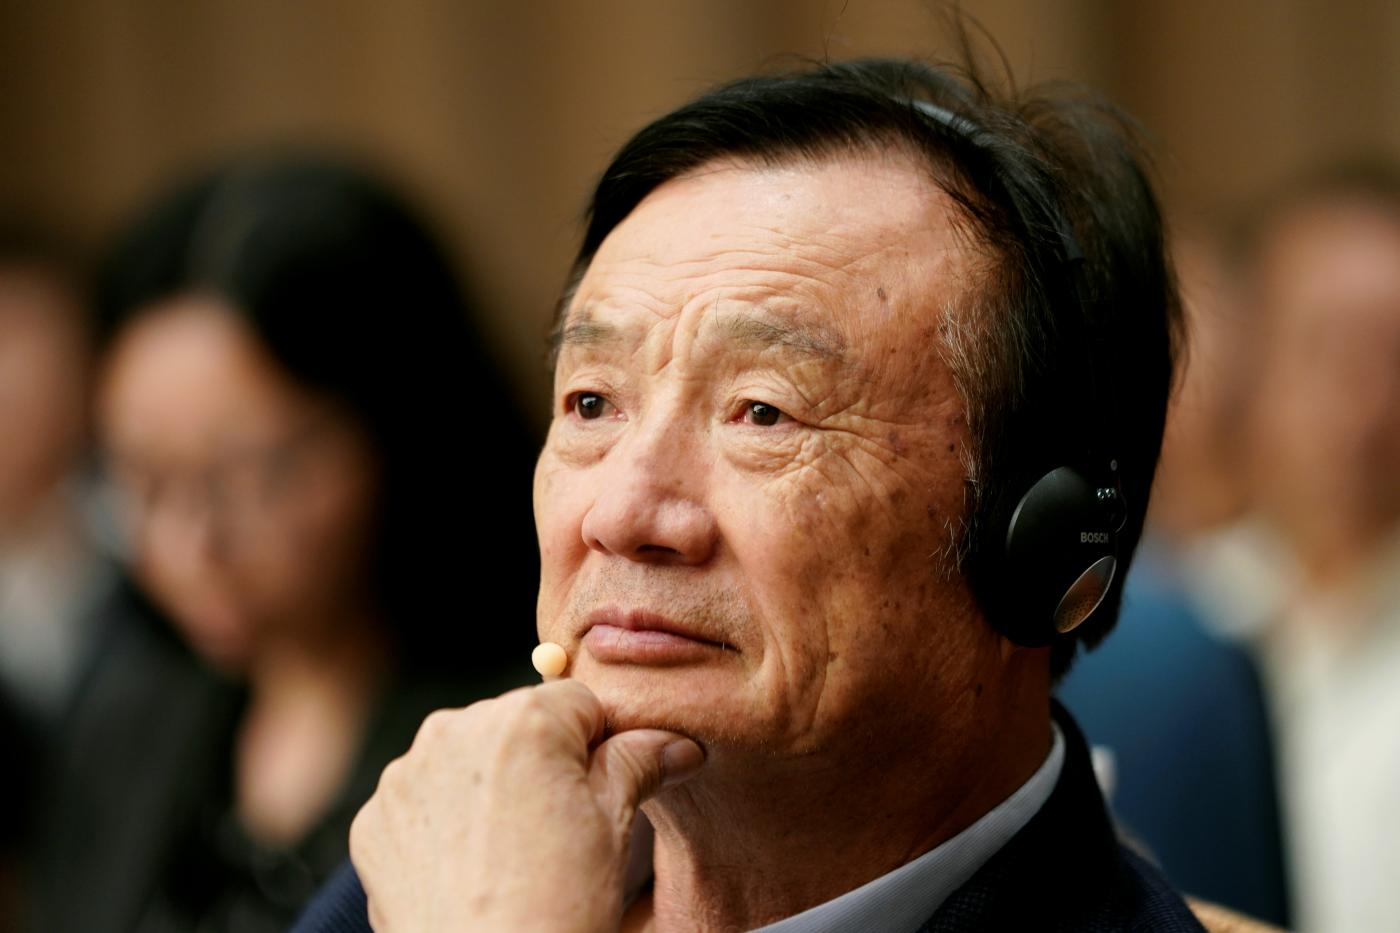 bd6237c561e The US ban on Huawei will cost the company $30 billion in lost sales ...